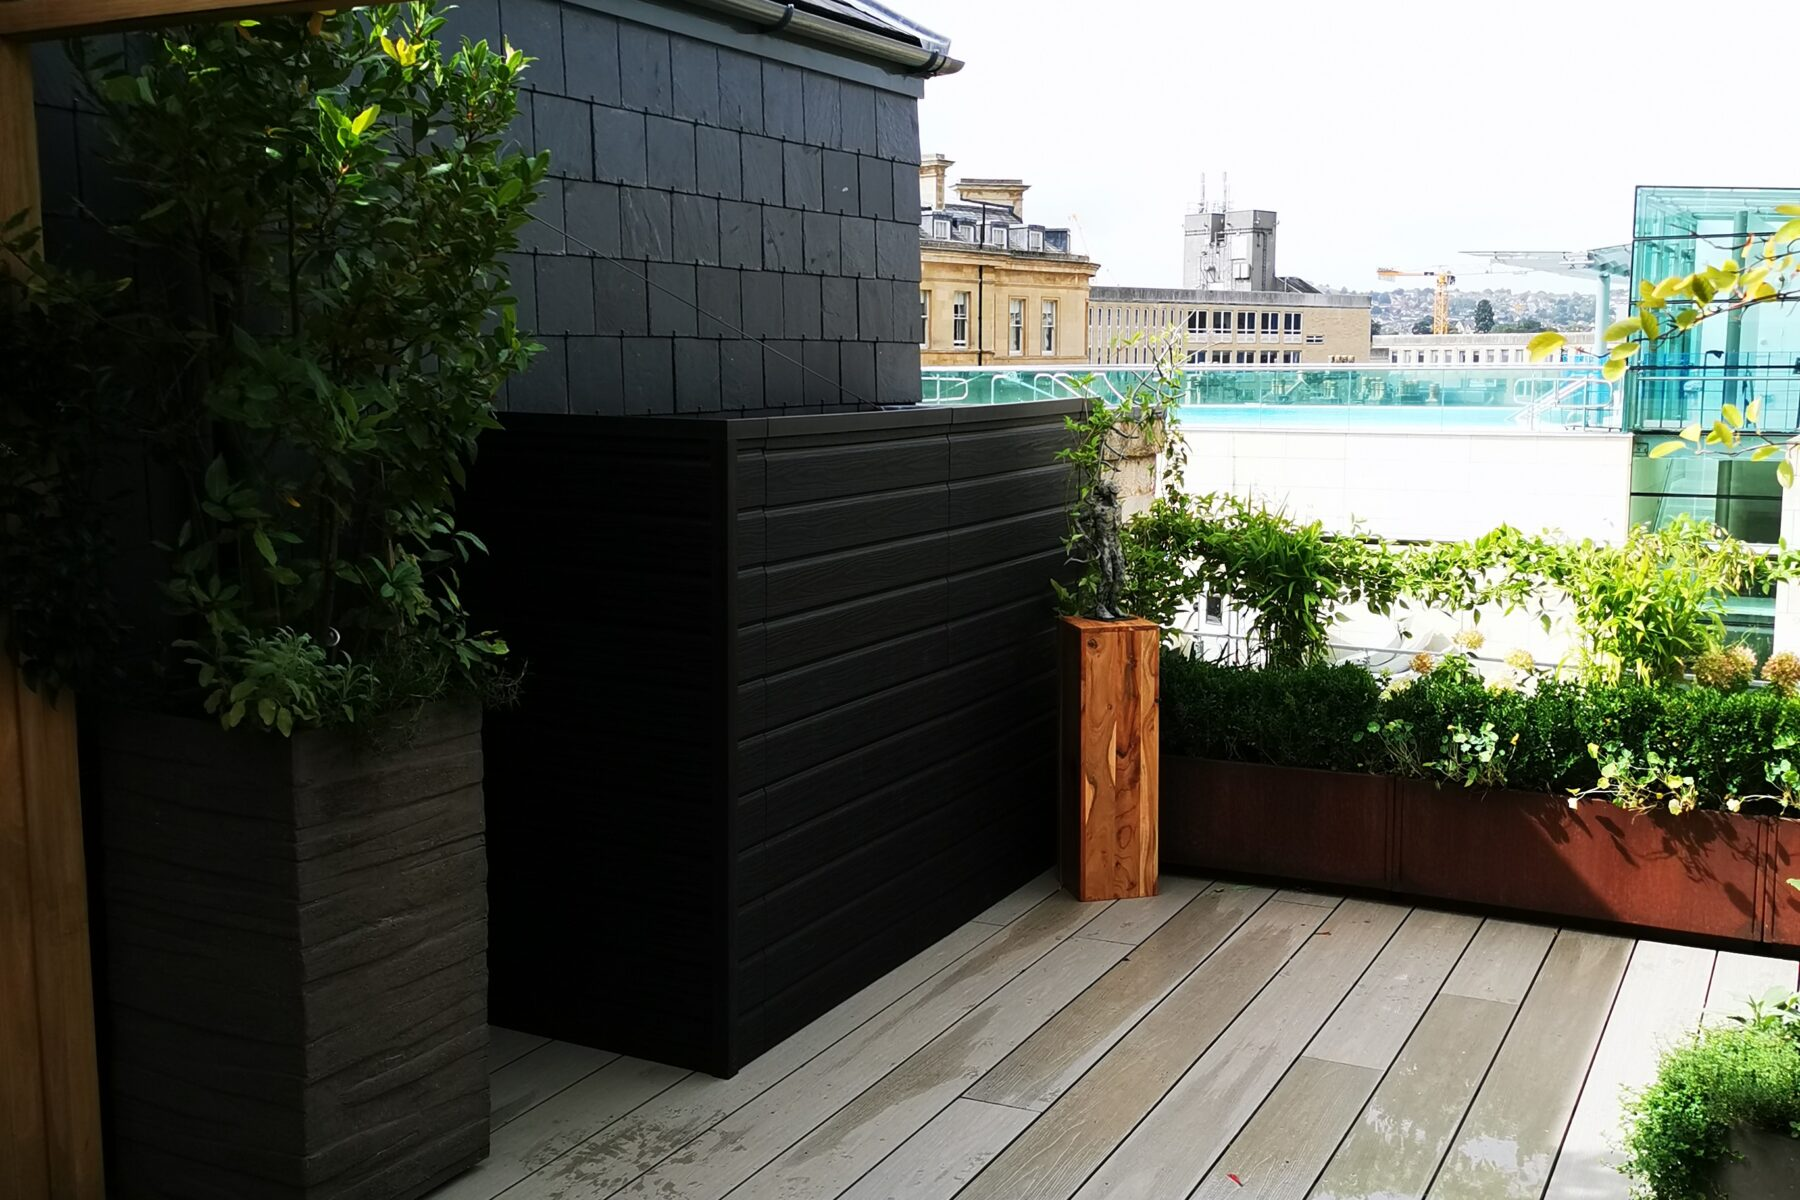 Composite Prime roof terrace and cladded storage box